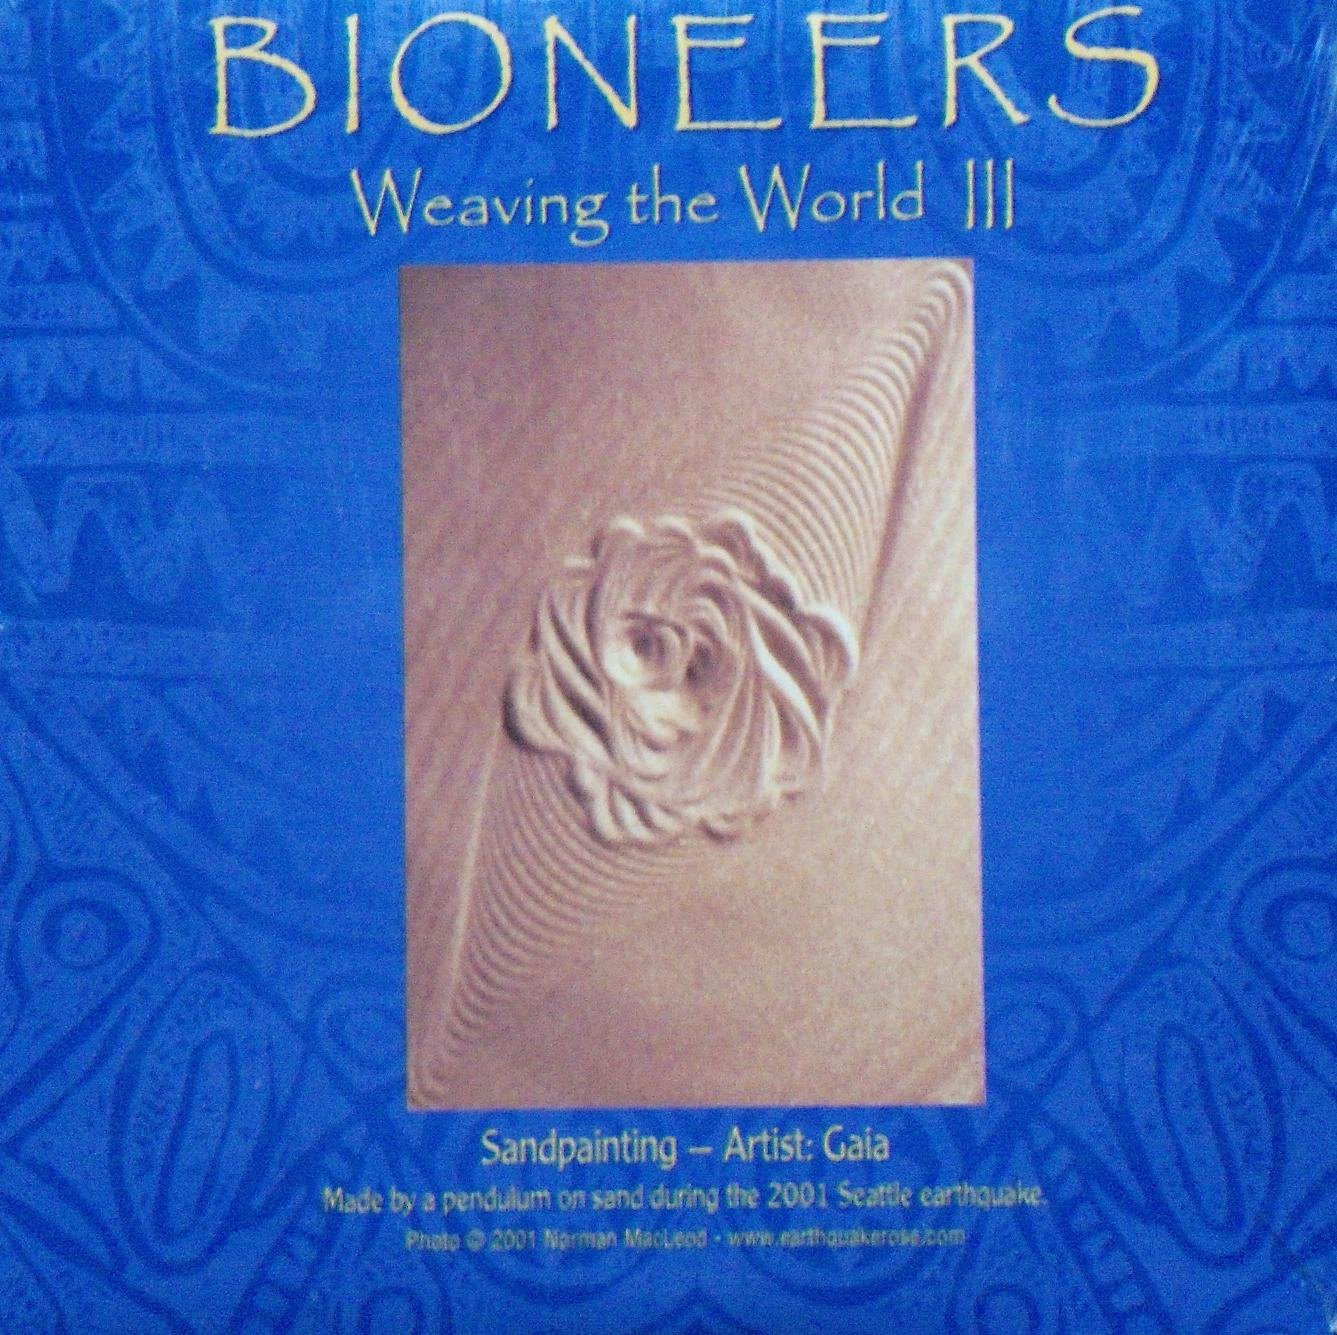 Bioneers - Weaving the World III - Voices of the Bioneers